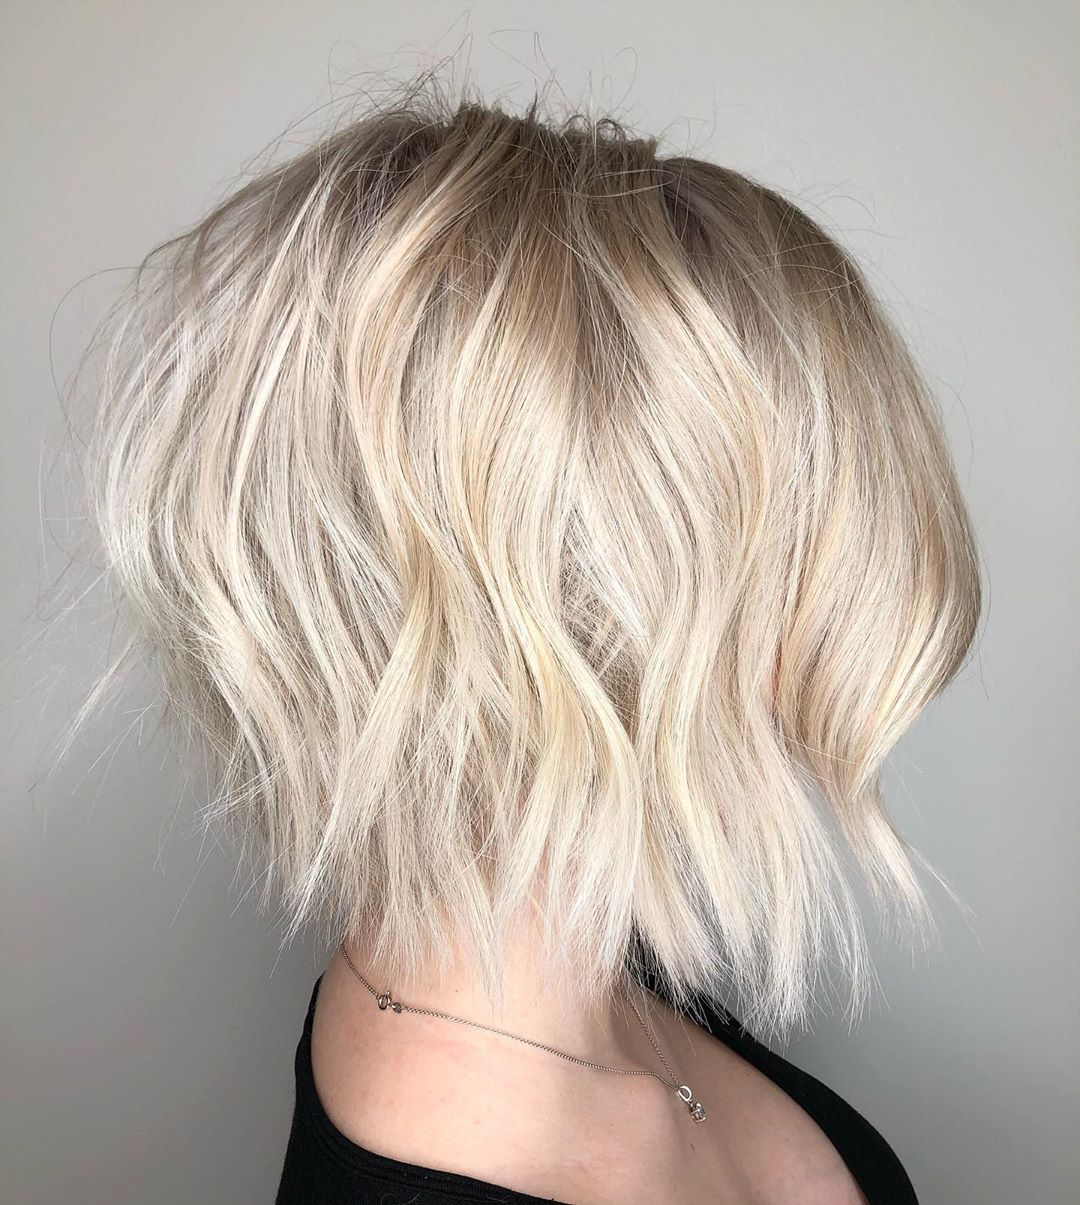 13 Popular Choppy Inverted Bob Haircuts to Consider Trying